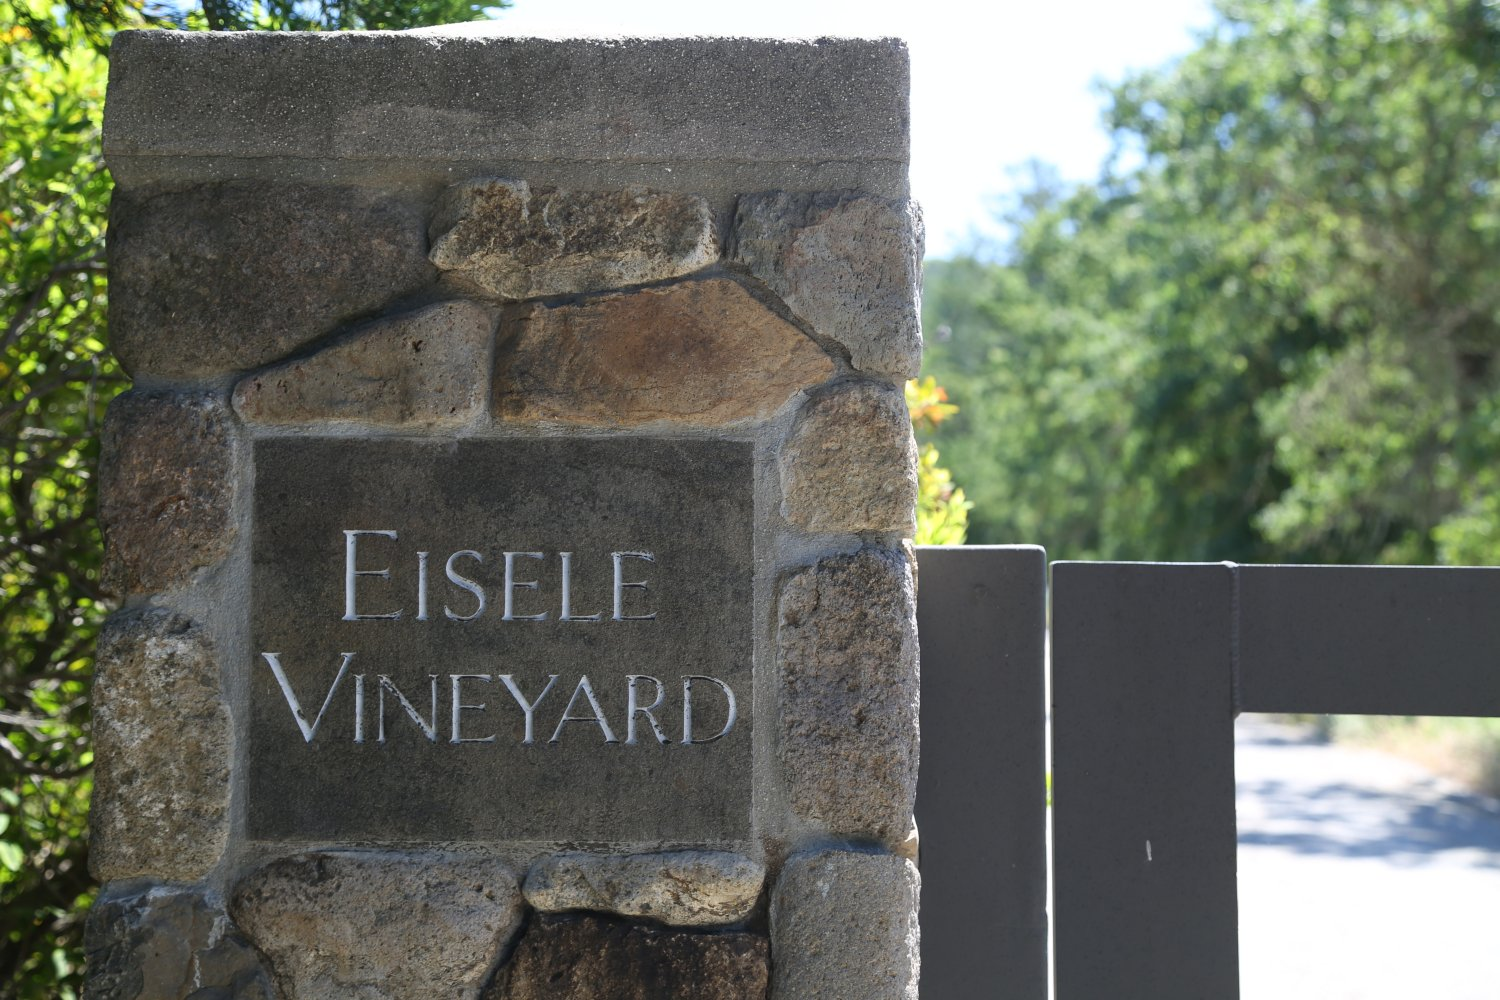 JOSEPH PHELPS EISELE VINEYARDS